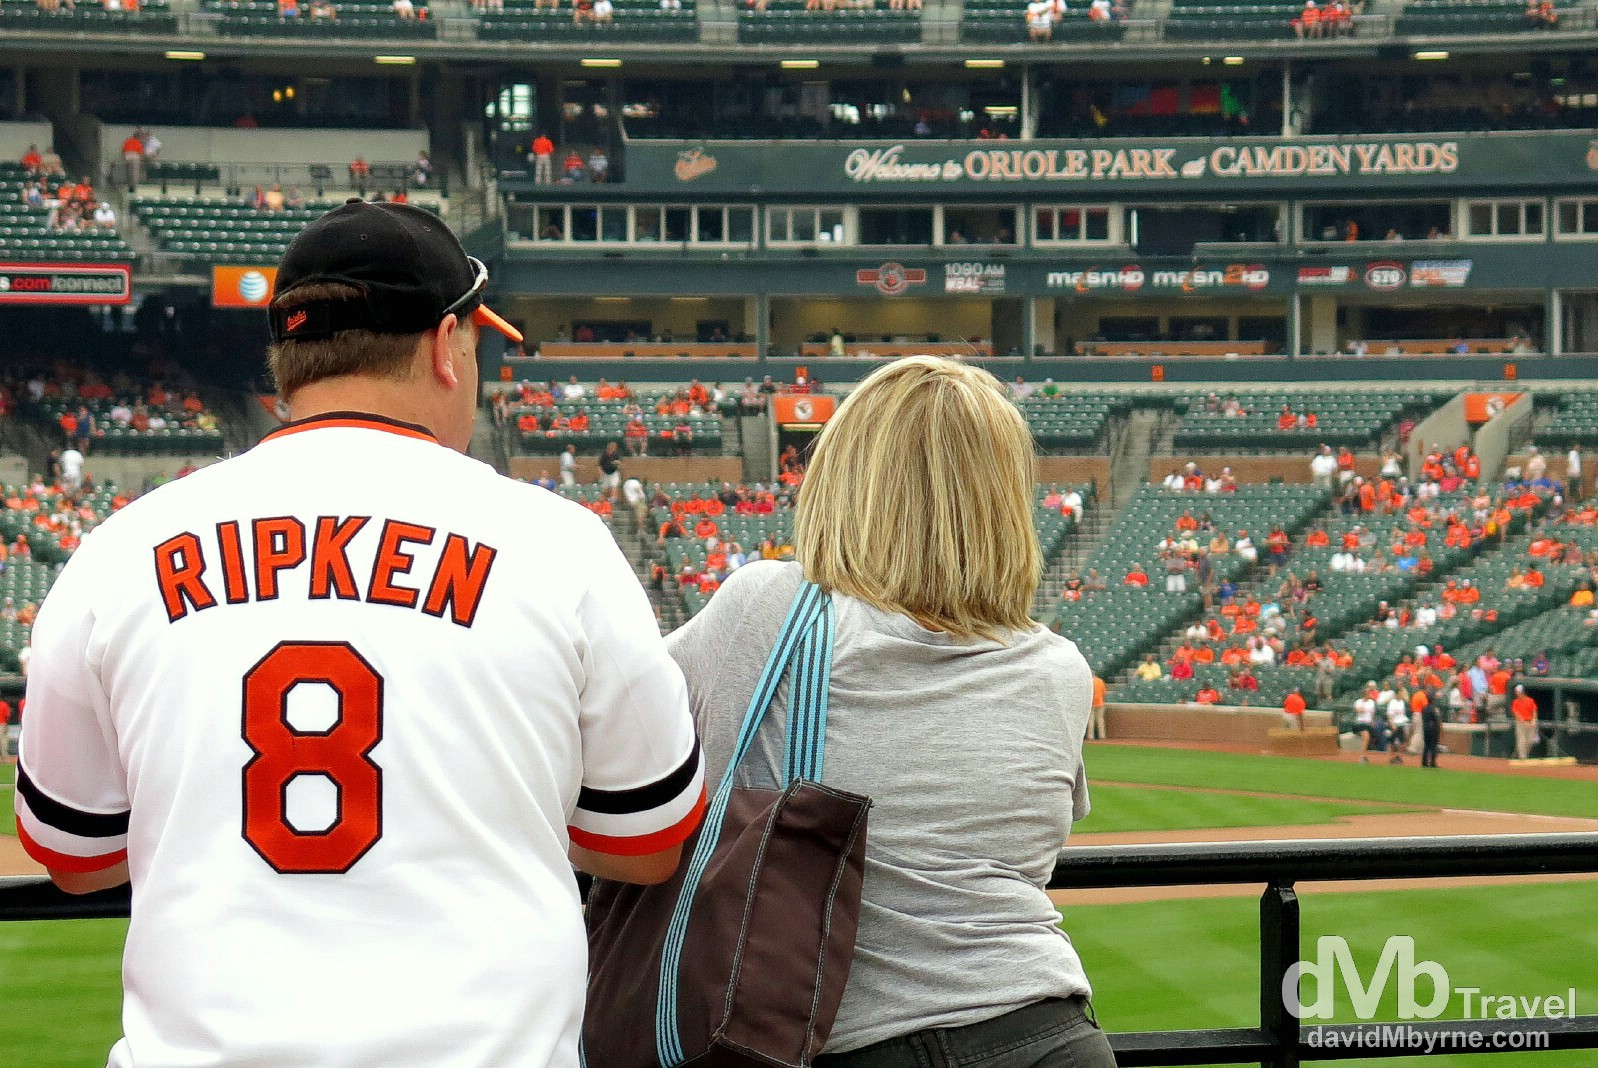 Oriole fans at Oriole Park at Camden Yards, Baltimore, Maryland, USA. July 9th 2013.